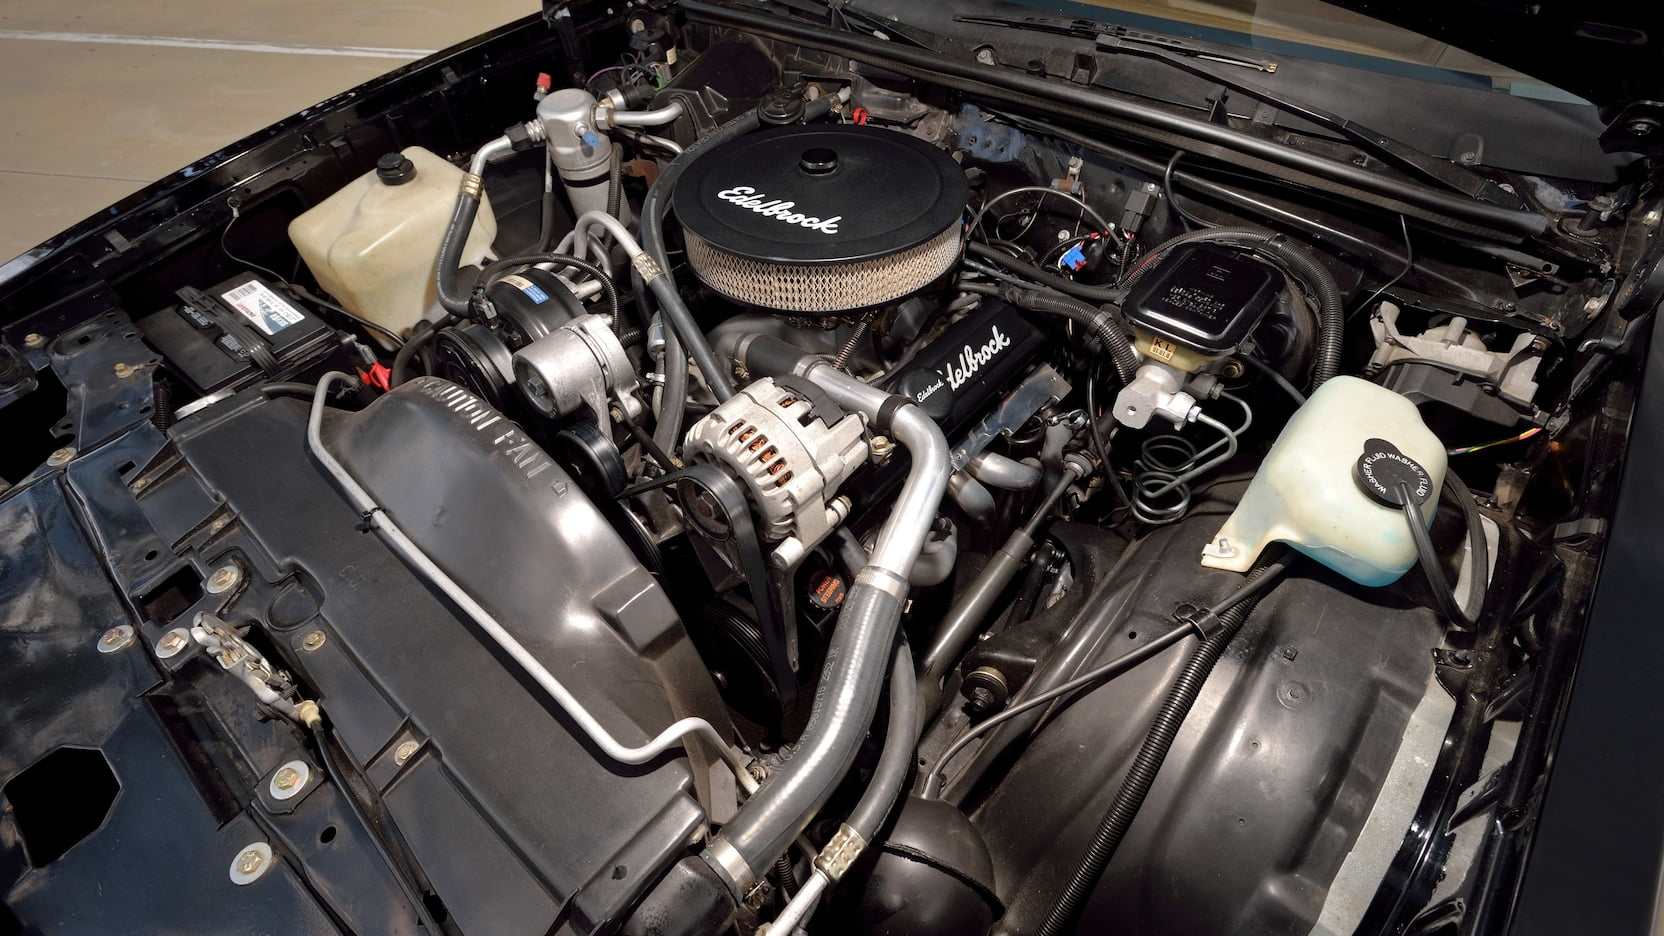 1988 Chevrolet Monte Carlo SS engine